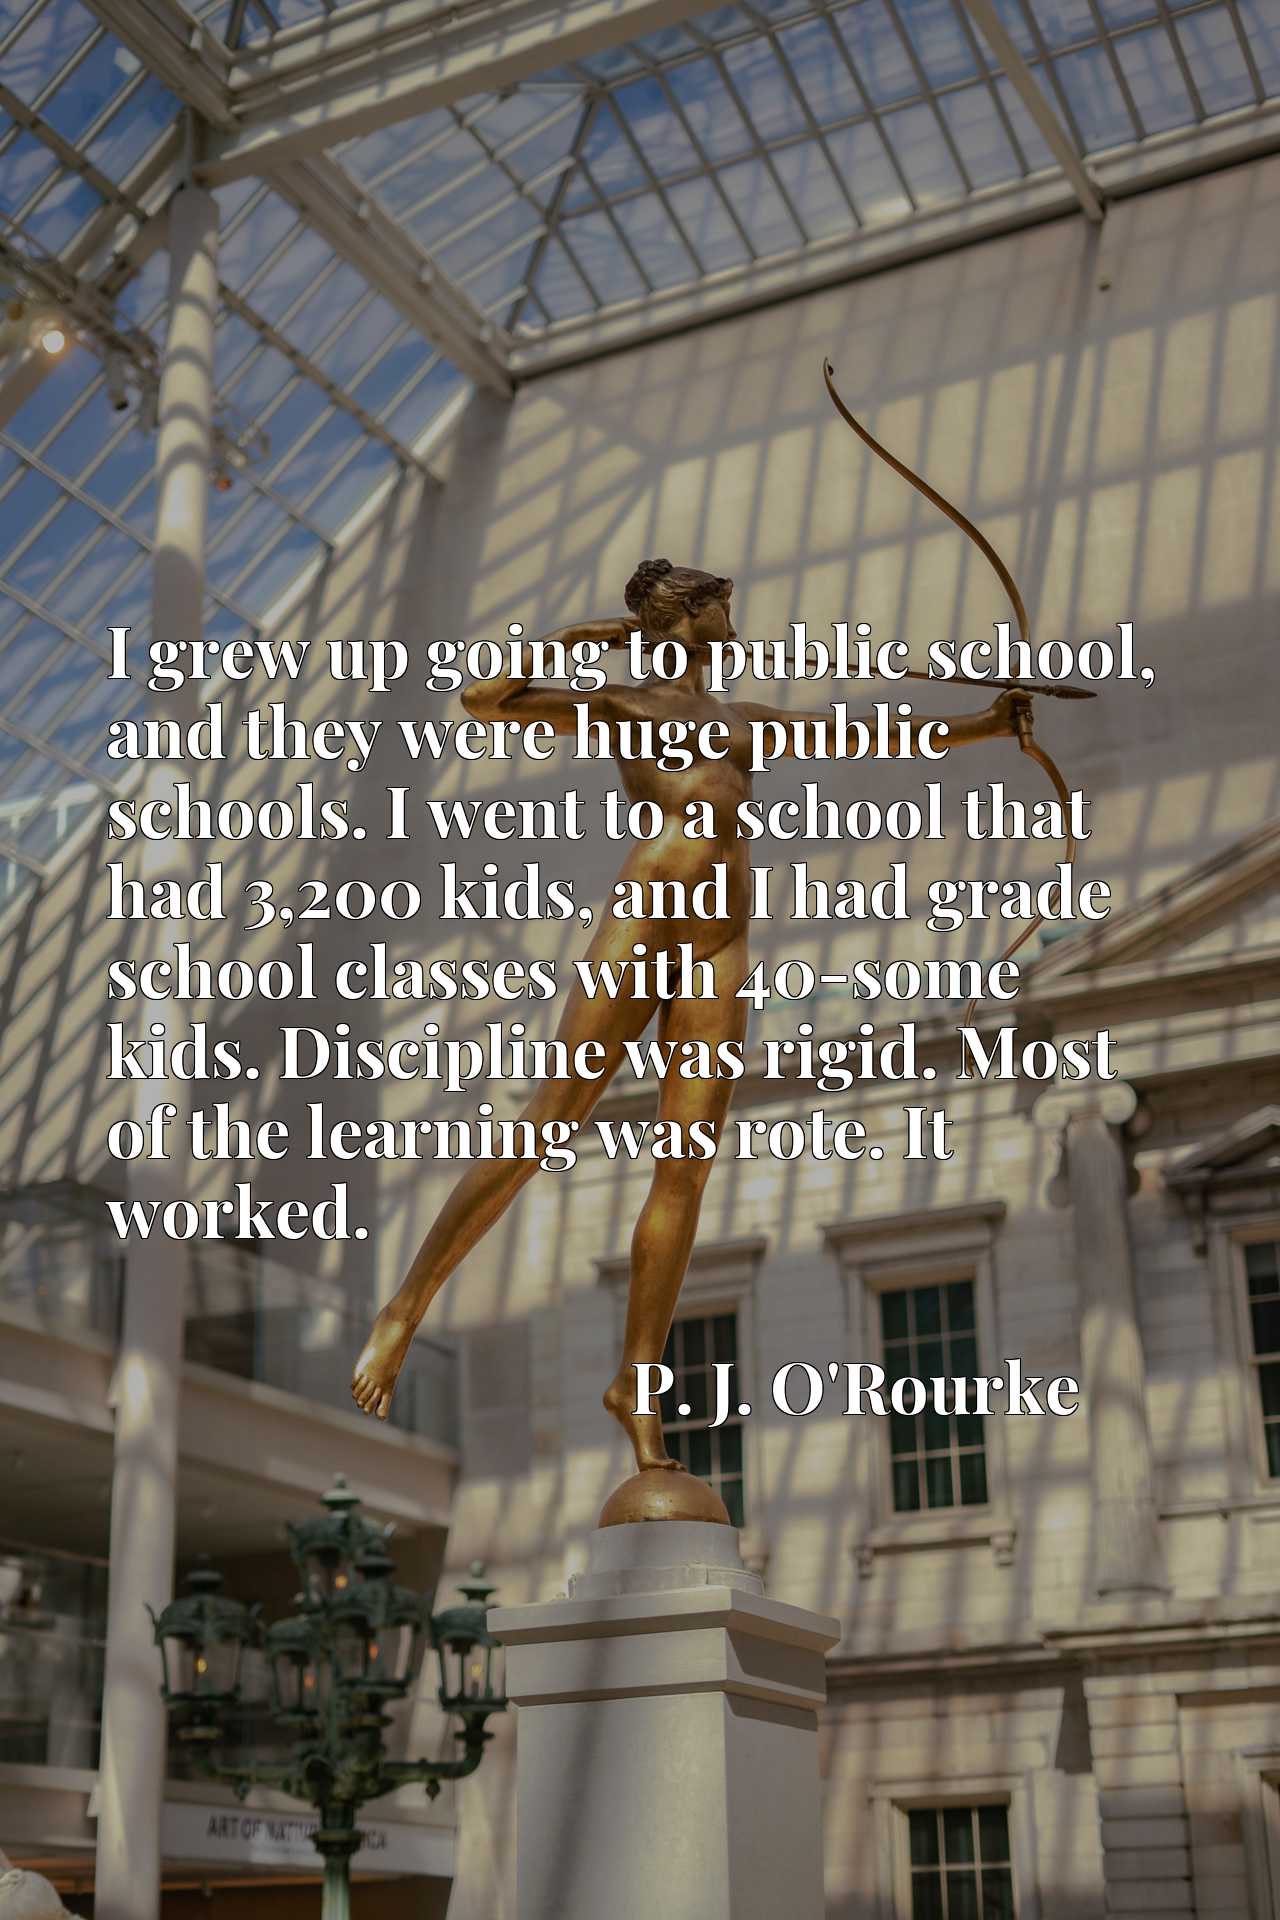 I grew up going to public school, and they were huge public schools. I went to a school that had 3,200 kids, and I had grade school classes with 40-some kids. Discipline was rigid. Most of the learning was rote. It worked.